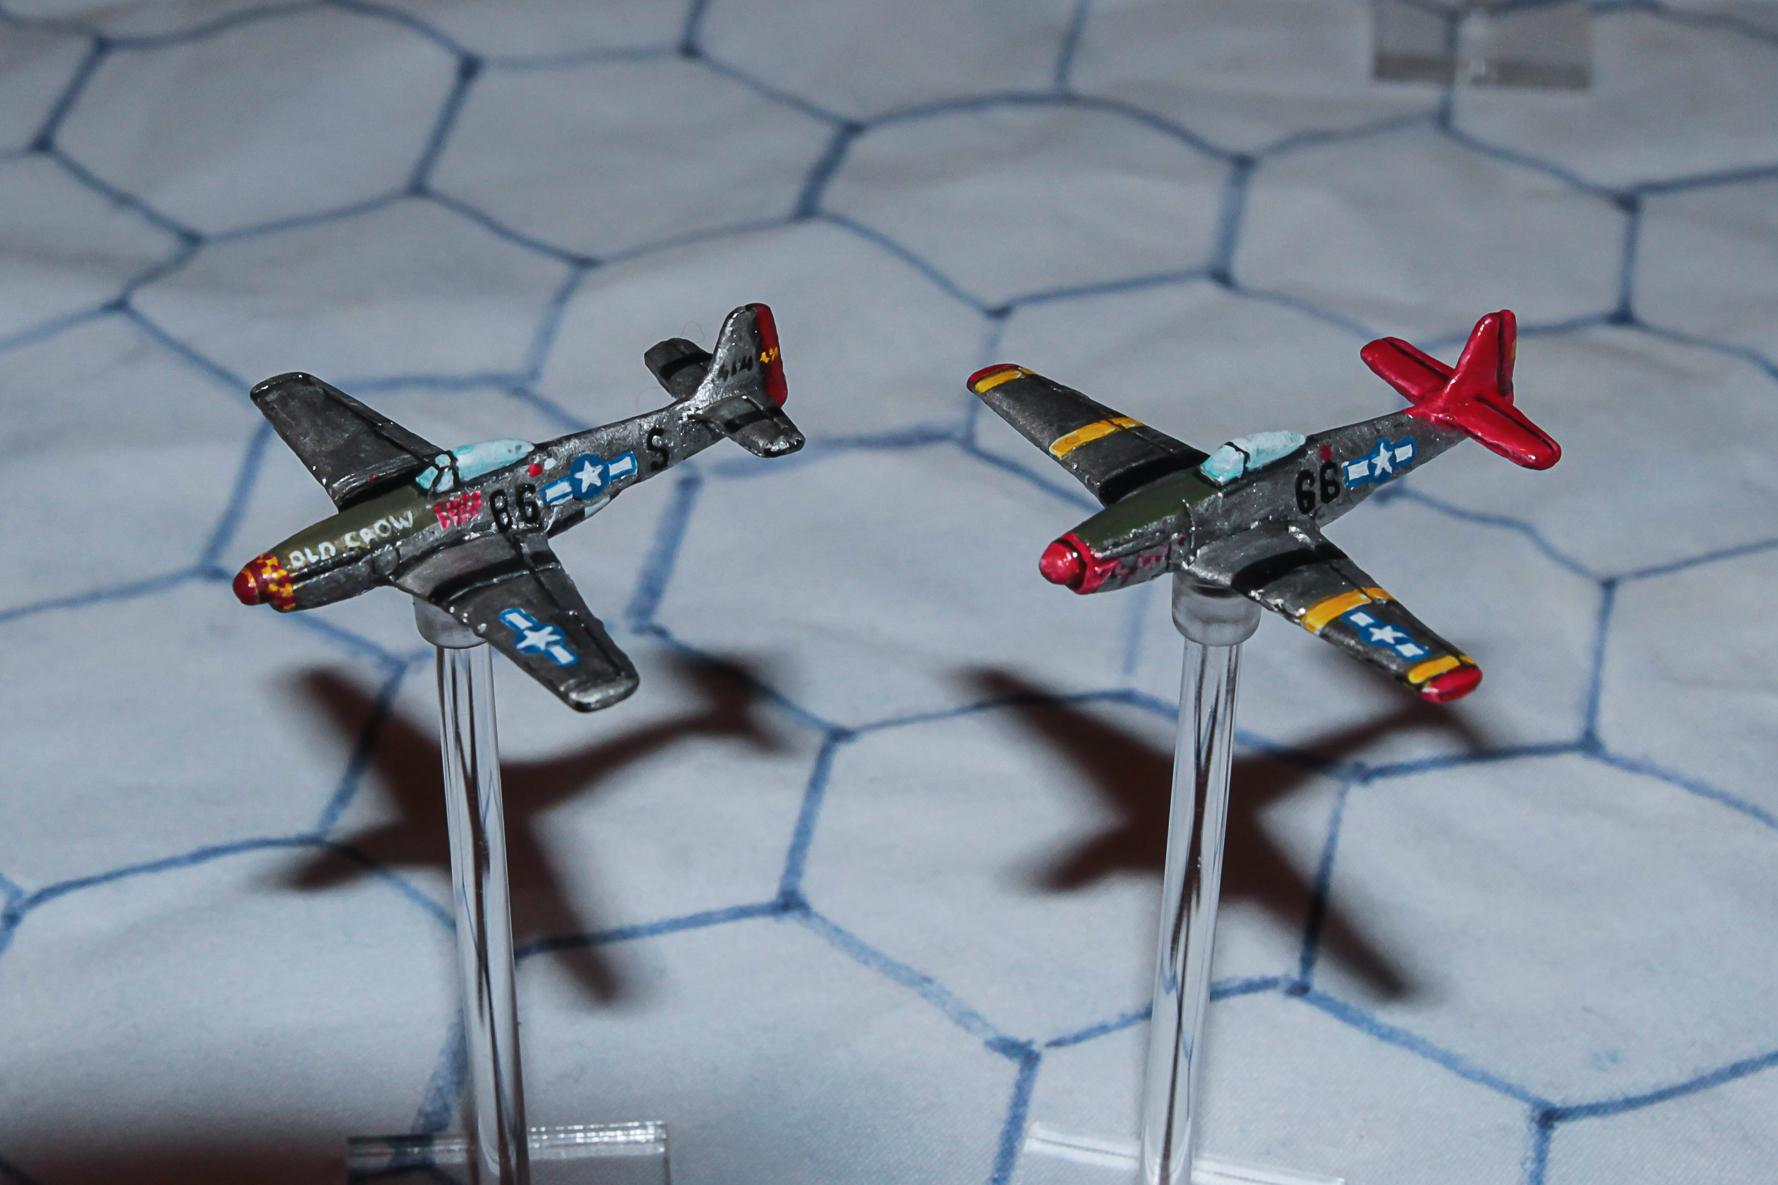 1:300 Scale, 6mm Scale, Air Combat, Airborne, Aircraft, Airplane, Check Your 6!, Fighter, Fliers, Historical, P-51, Usaaf, World War 2